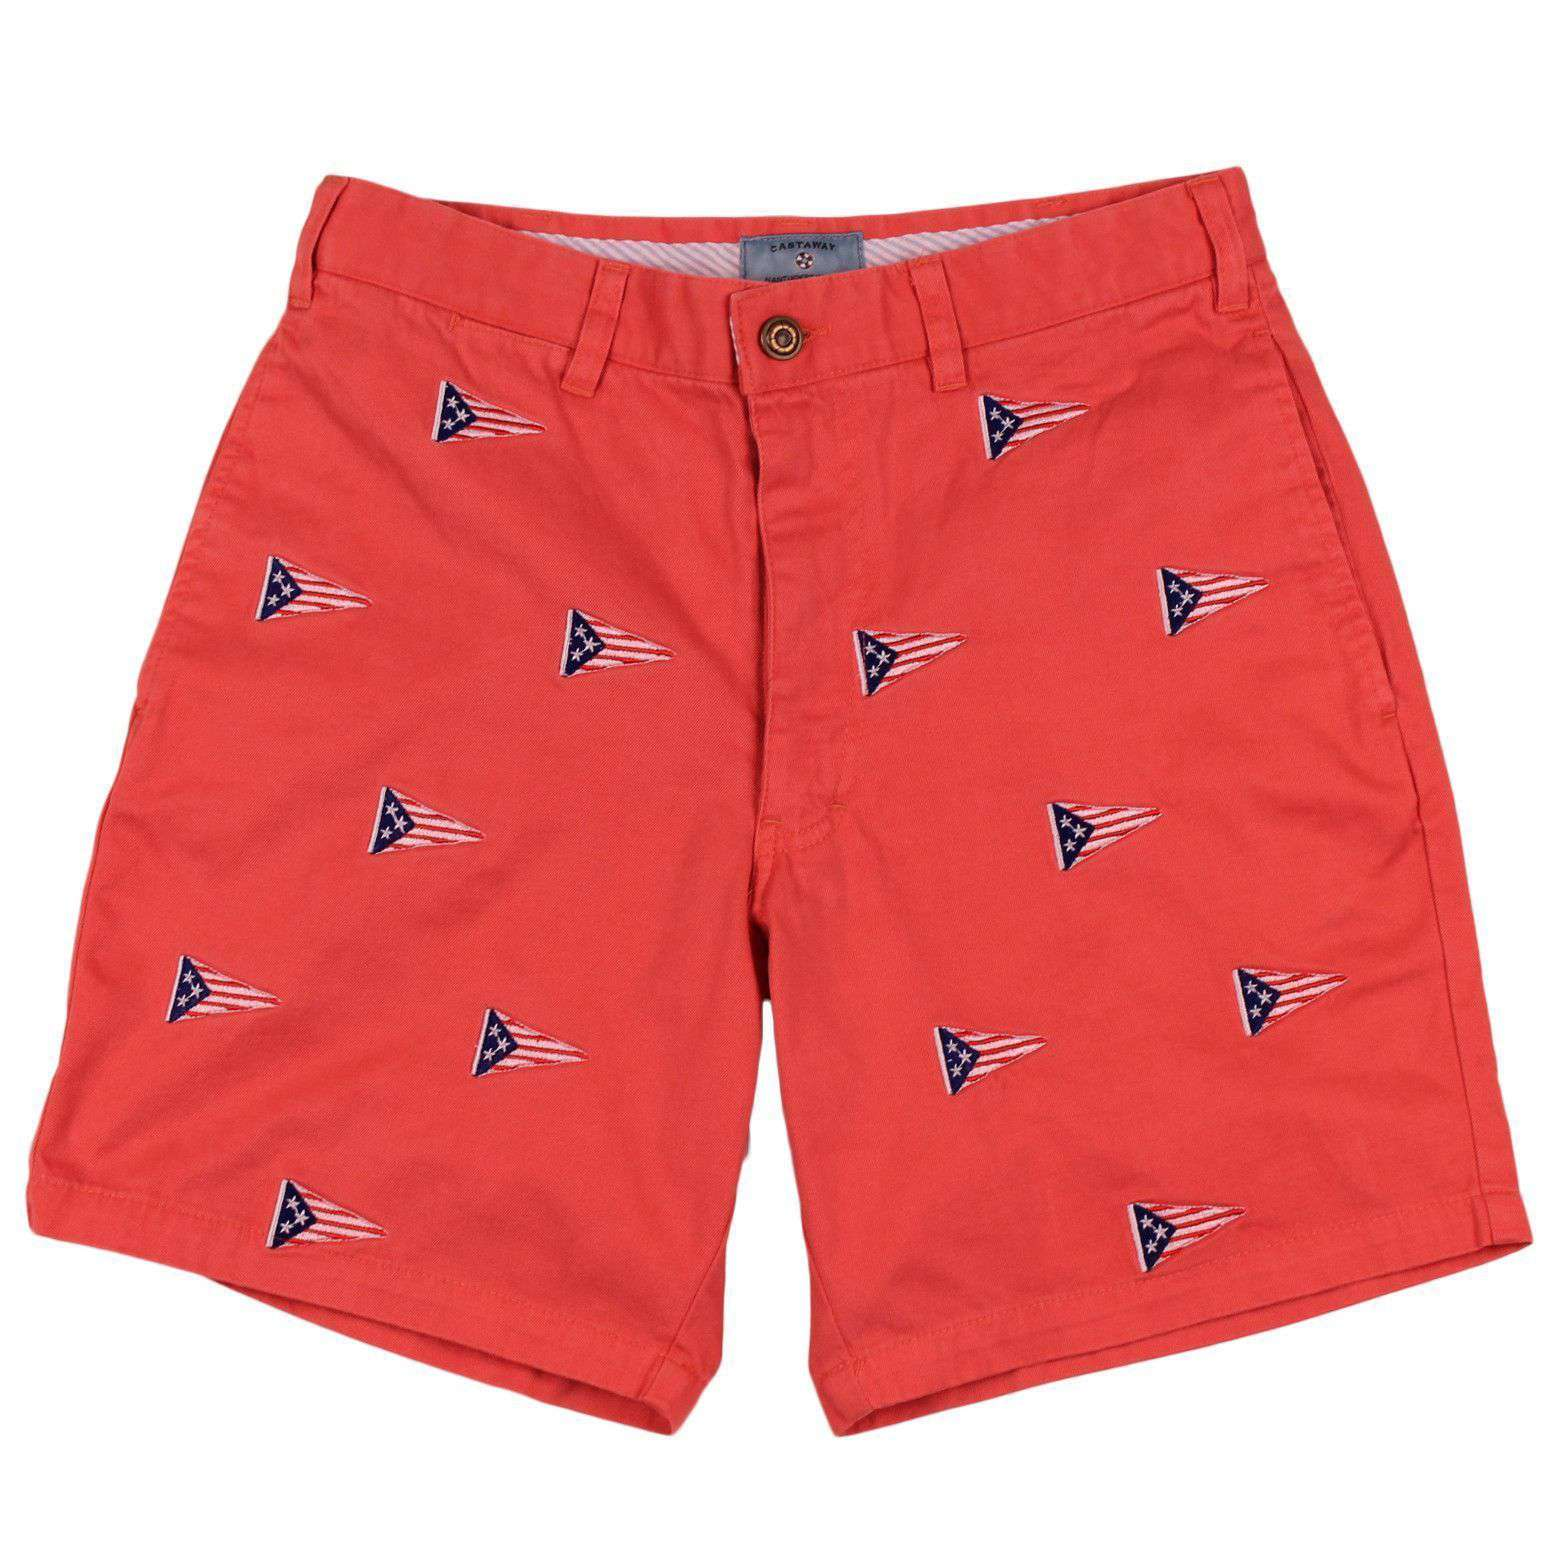 Mariner Short with Embroidered American Burgee in Red Dawn by Castaway Clothing  - 3